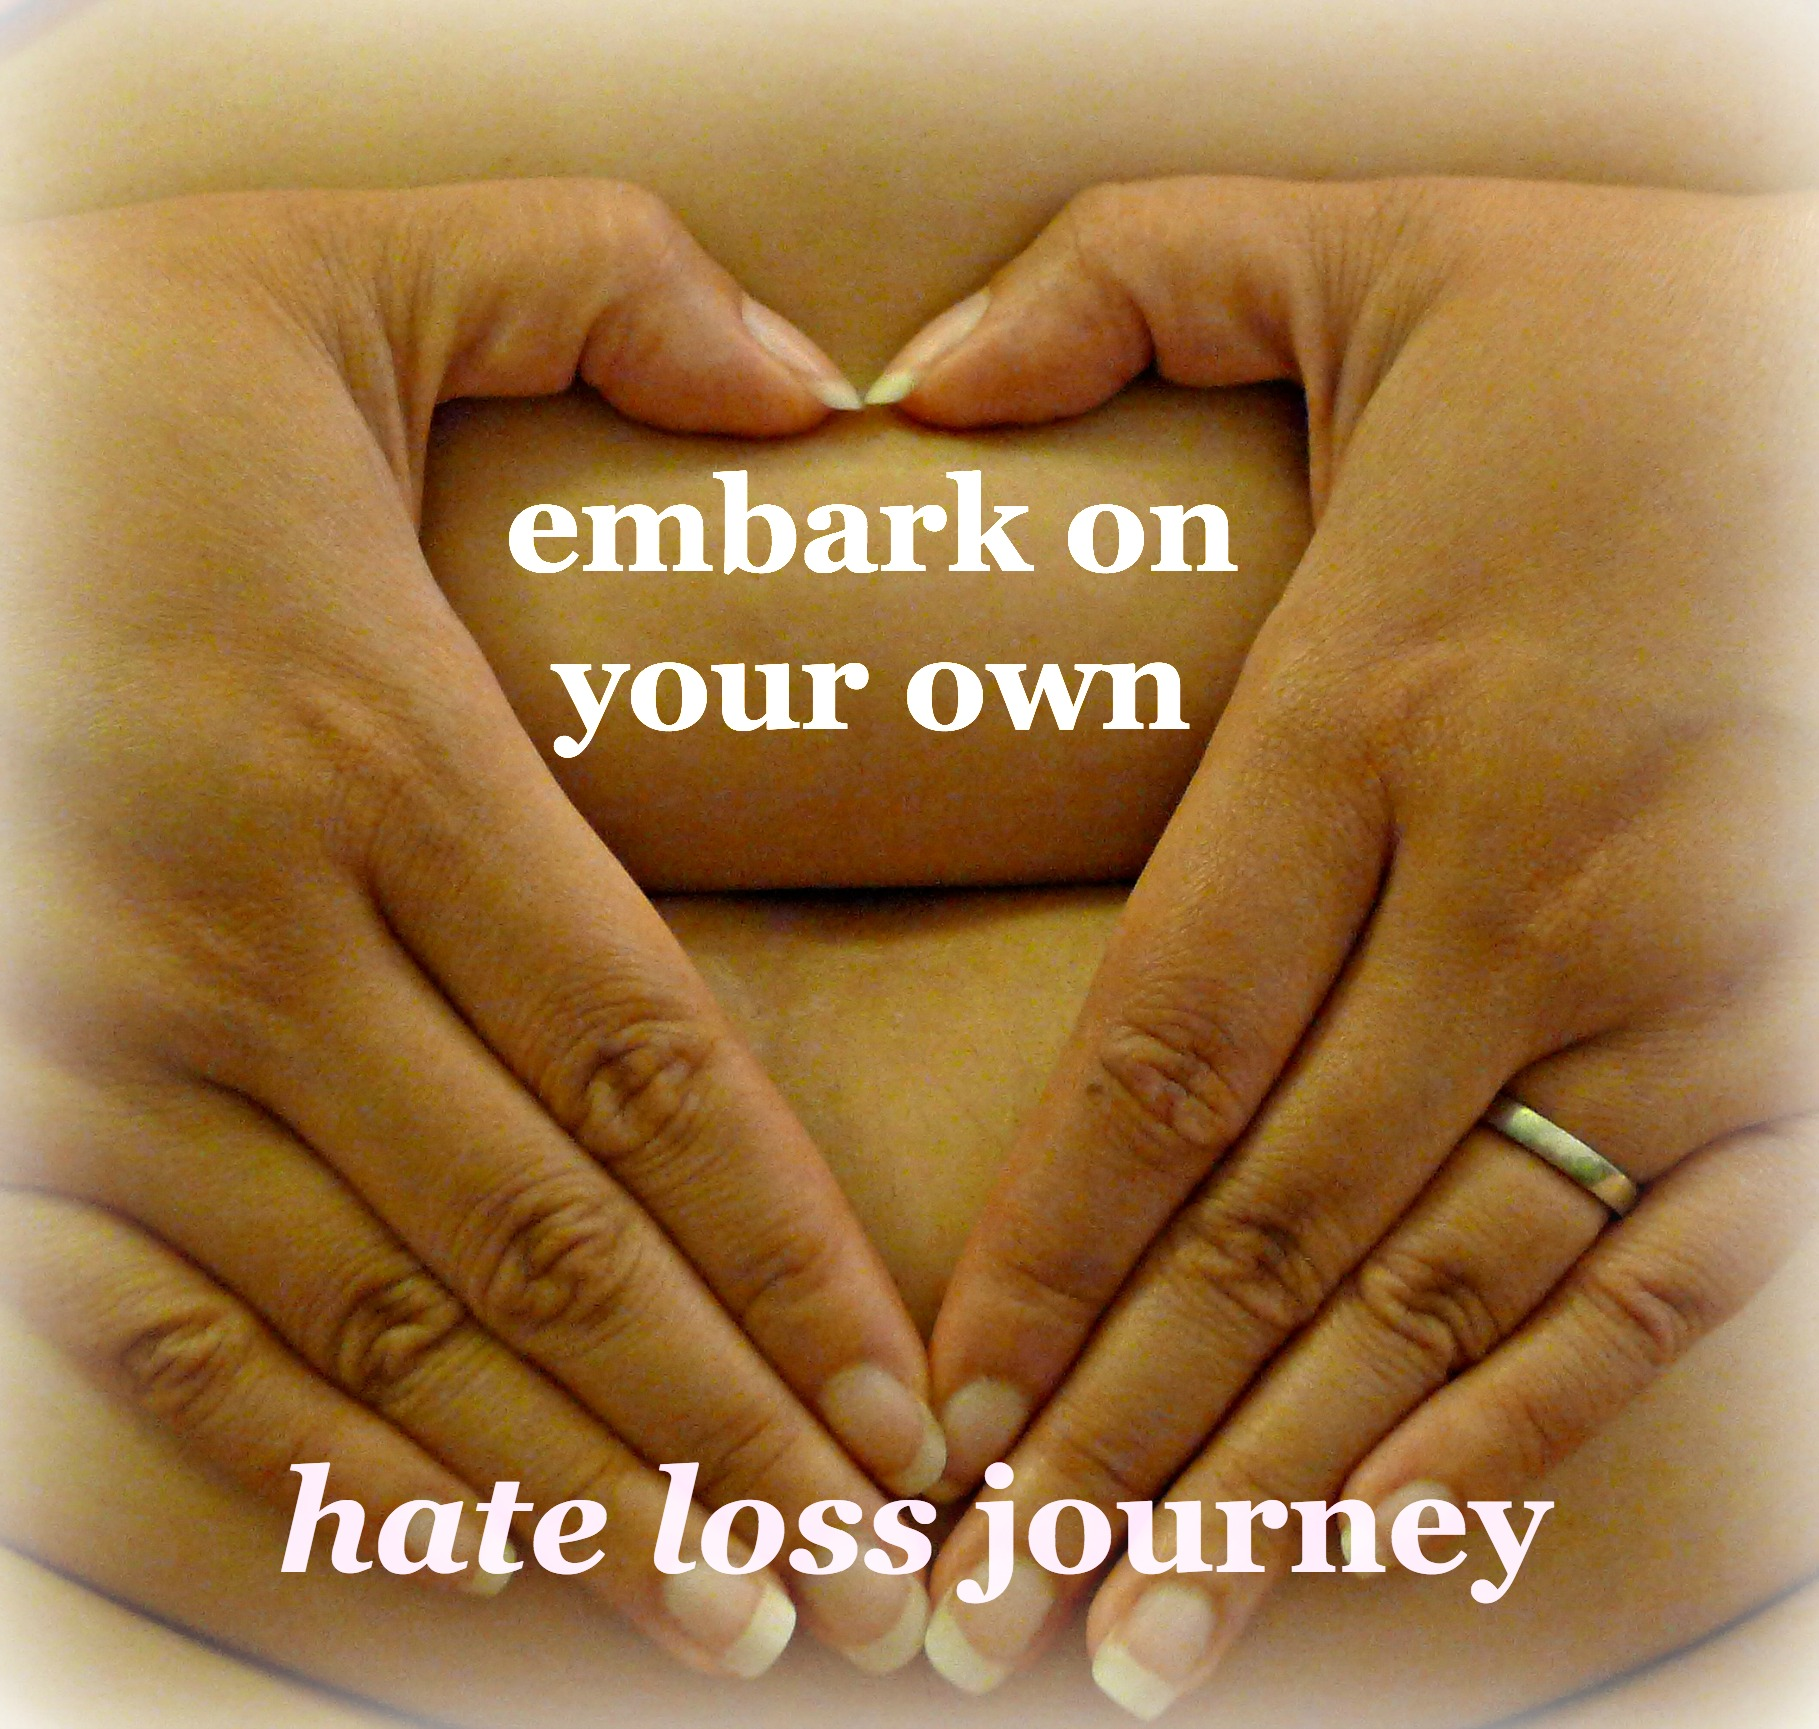 embark on your own hate loss journey by clicking here